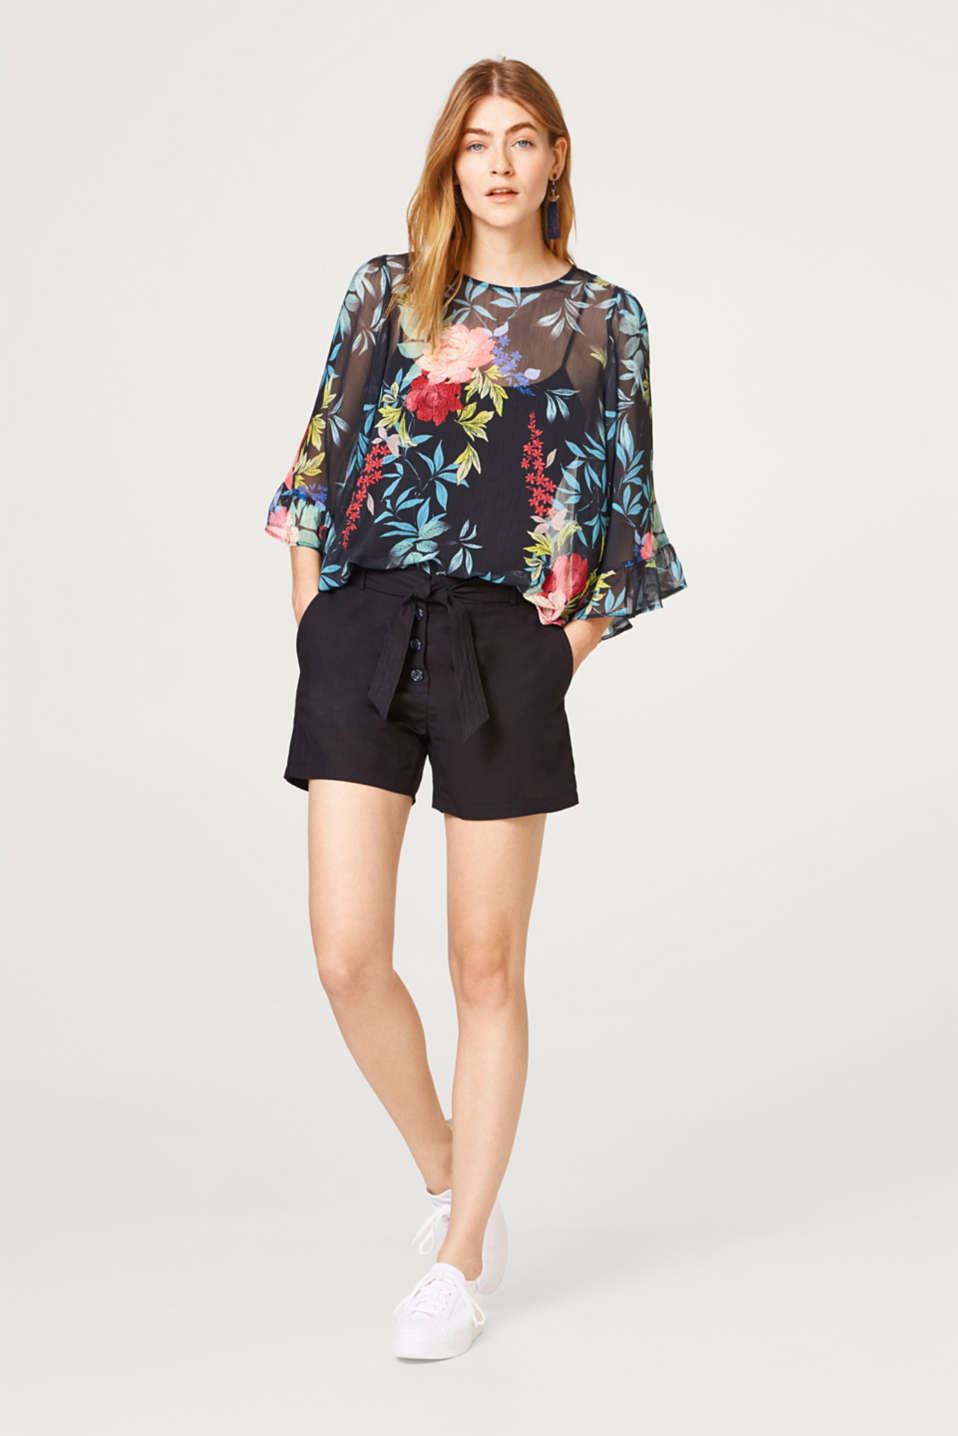 Floral chiffon blouse with wide flounce sleeves